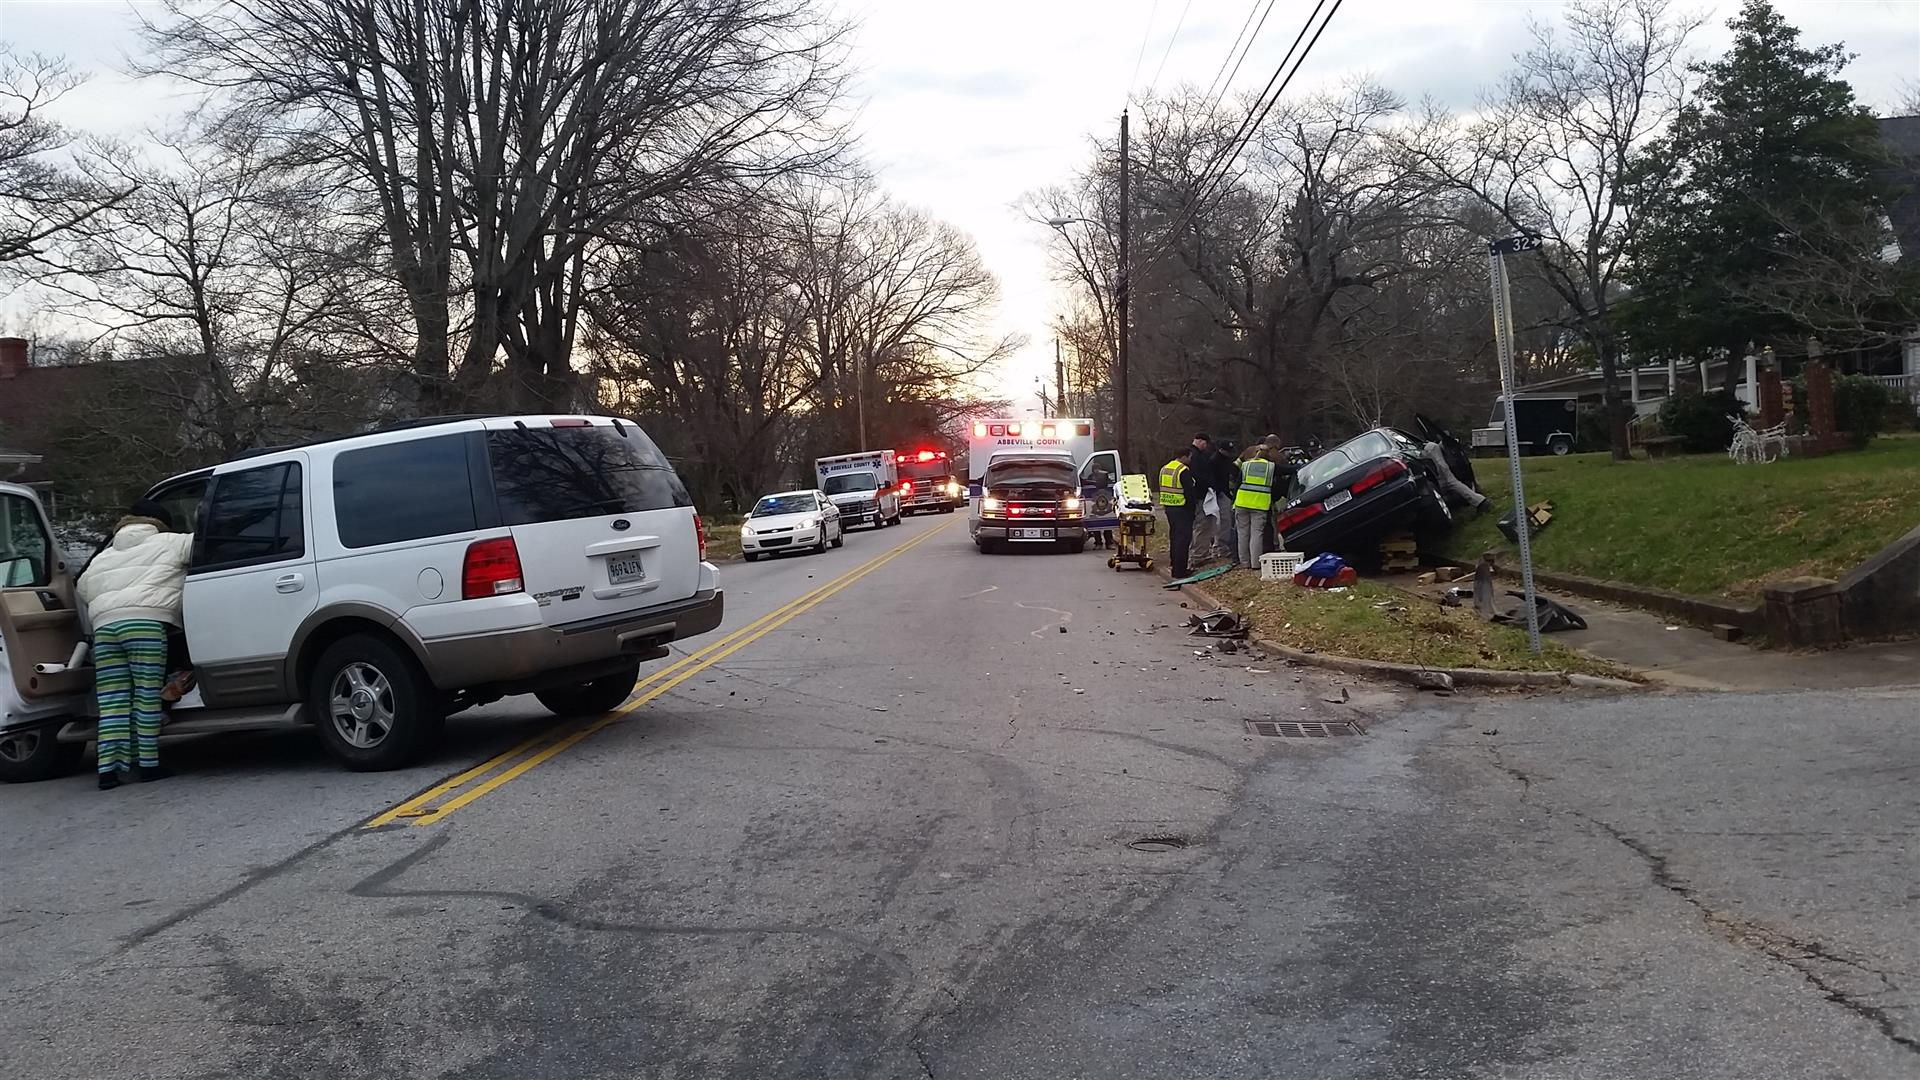 Firefighters respond to car crash